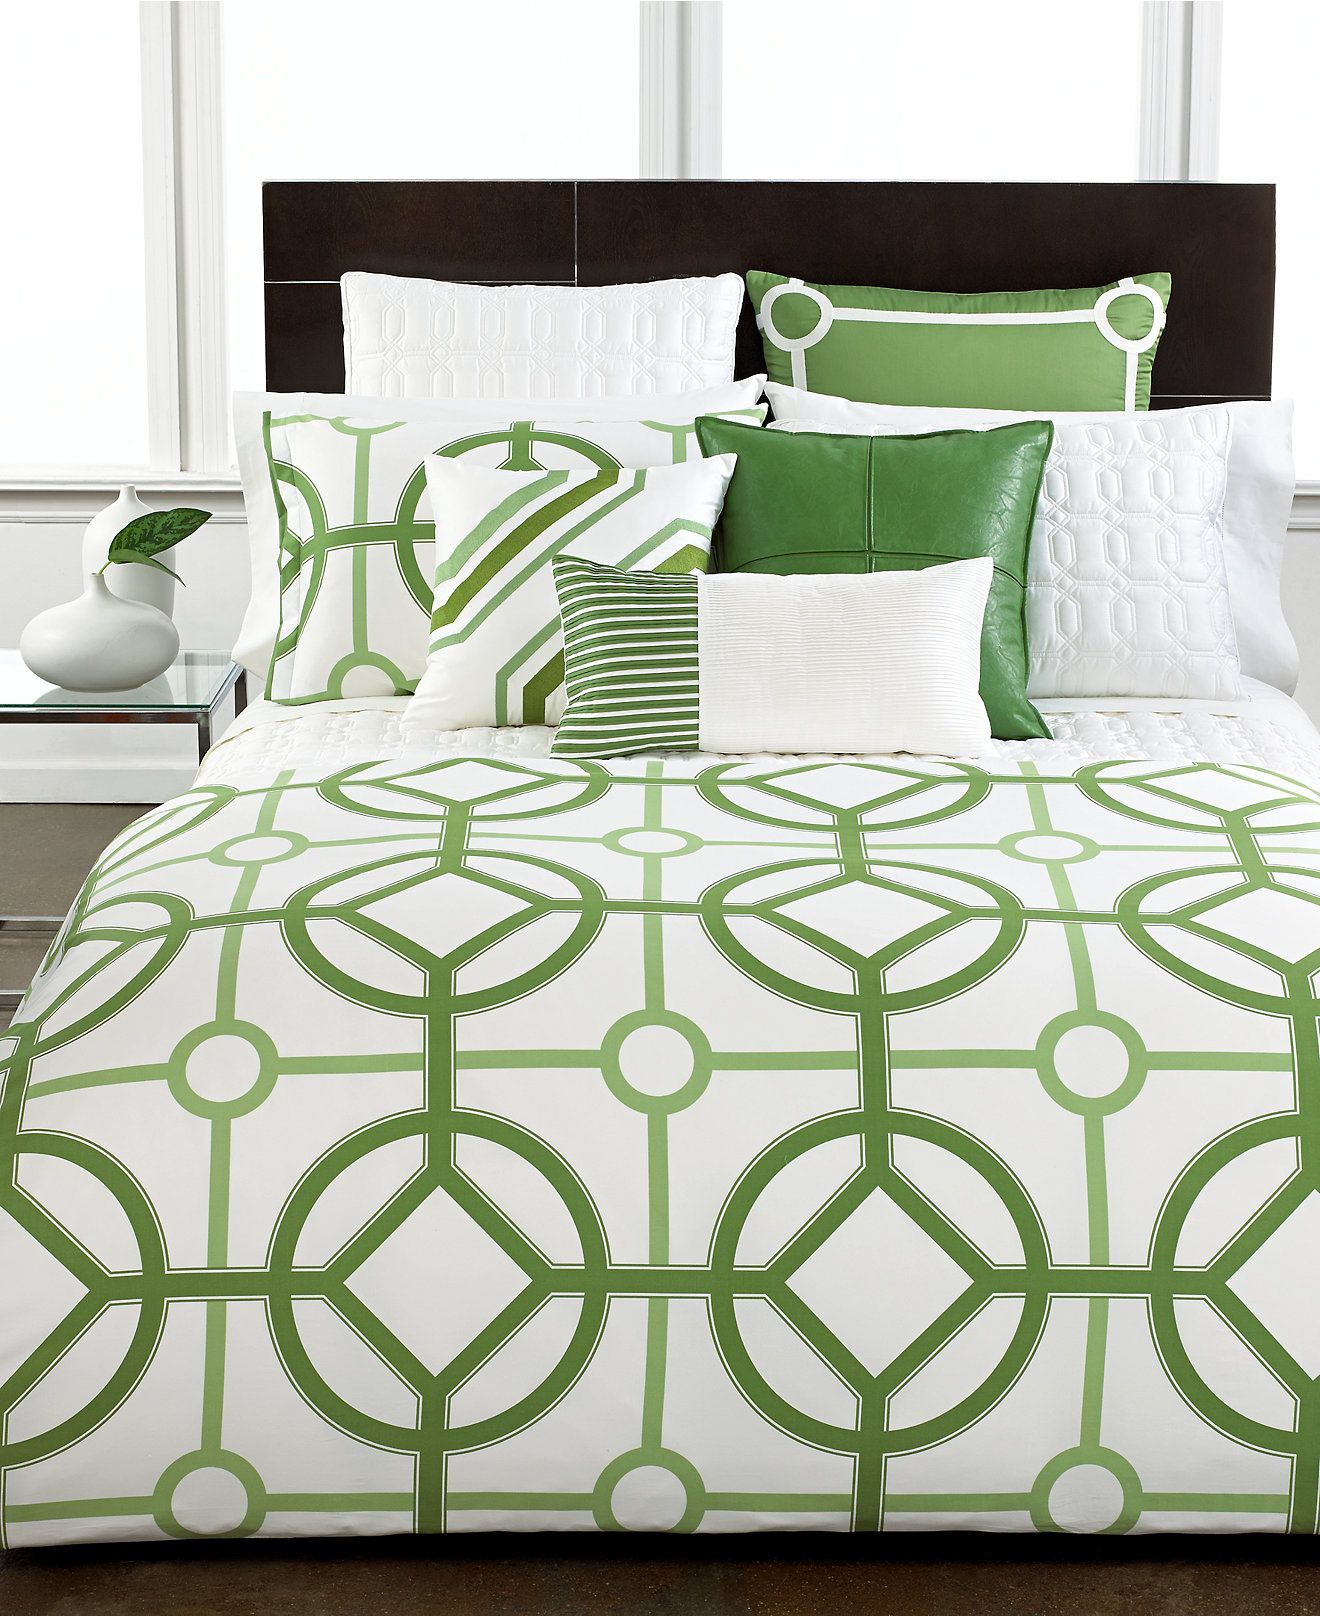 Hotel Collection Alabaster: CLOSEOUT! Hotel Collection Modern Trellis Bedding